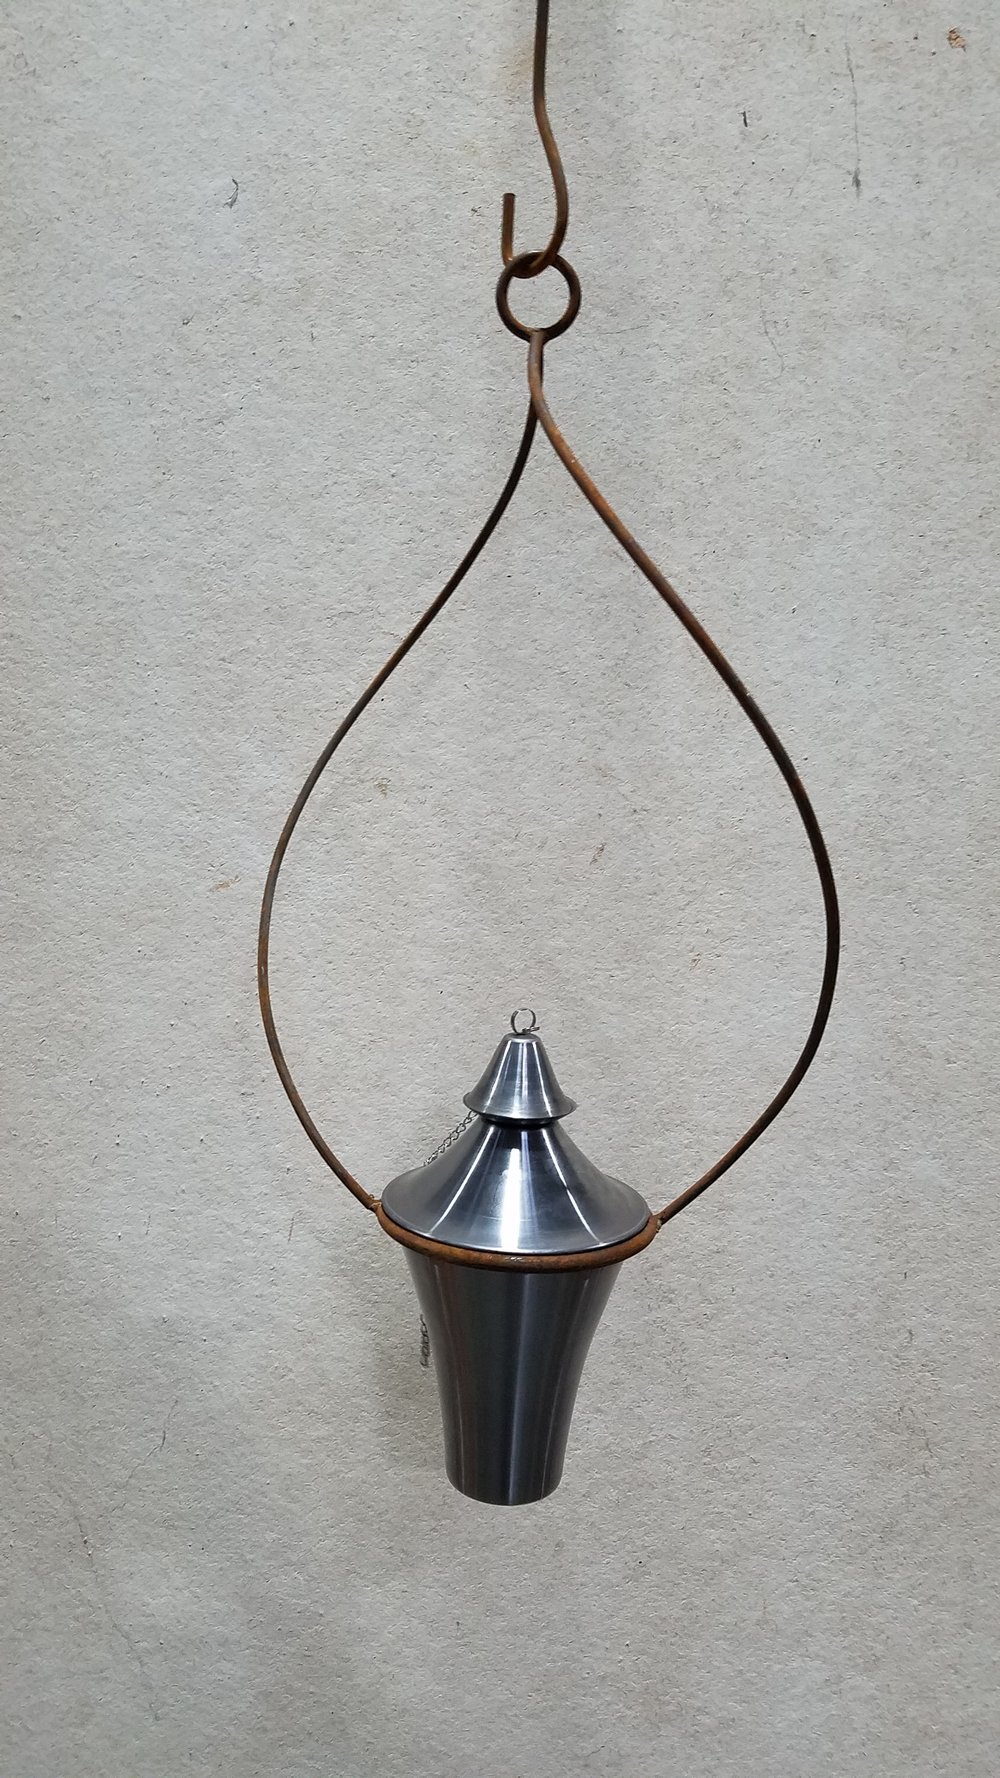 "6"" Torch-Mild Steel (6MS) Fits 6"" Ring; Pictured with Twisted Hanging Pot Holder 6 (6TW)"